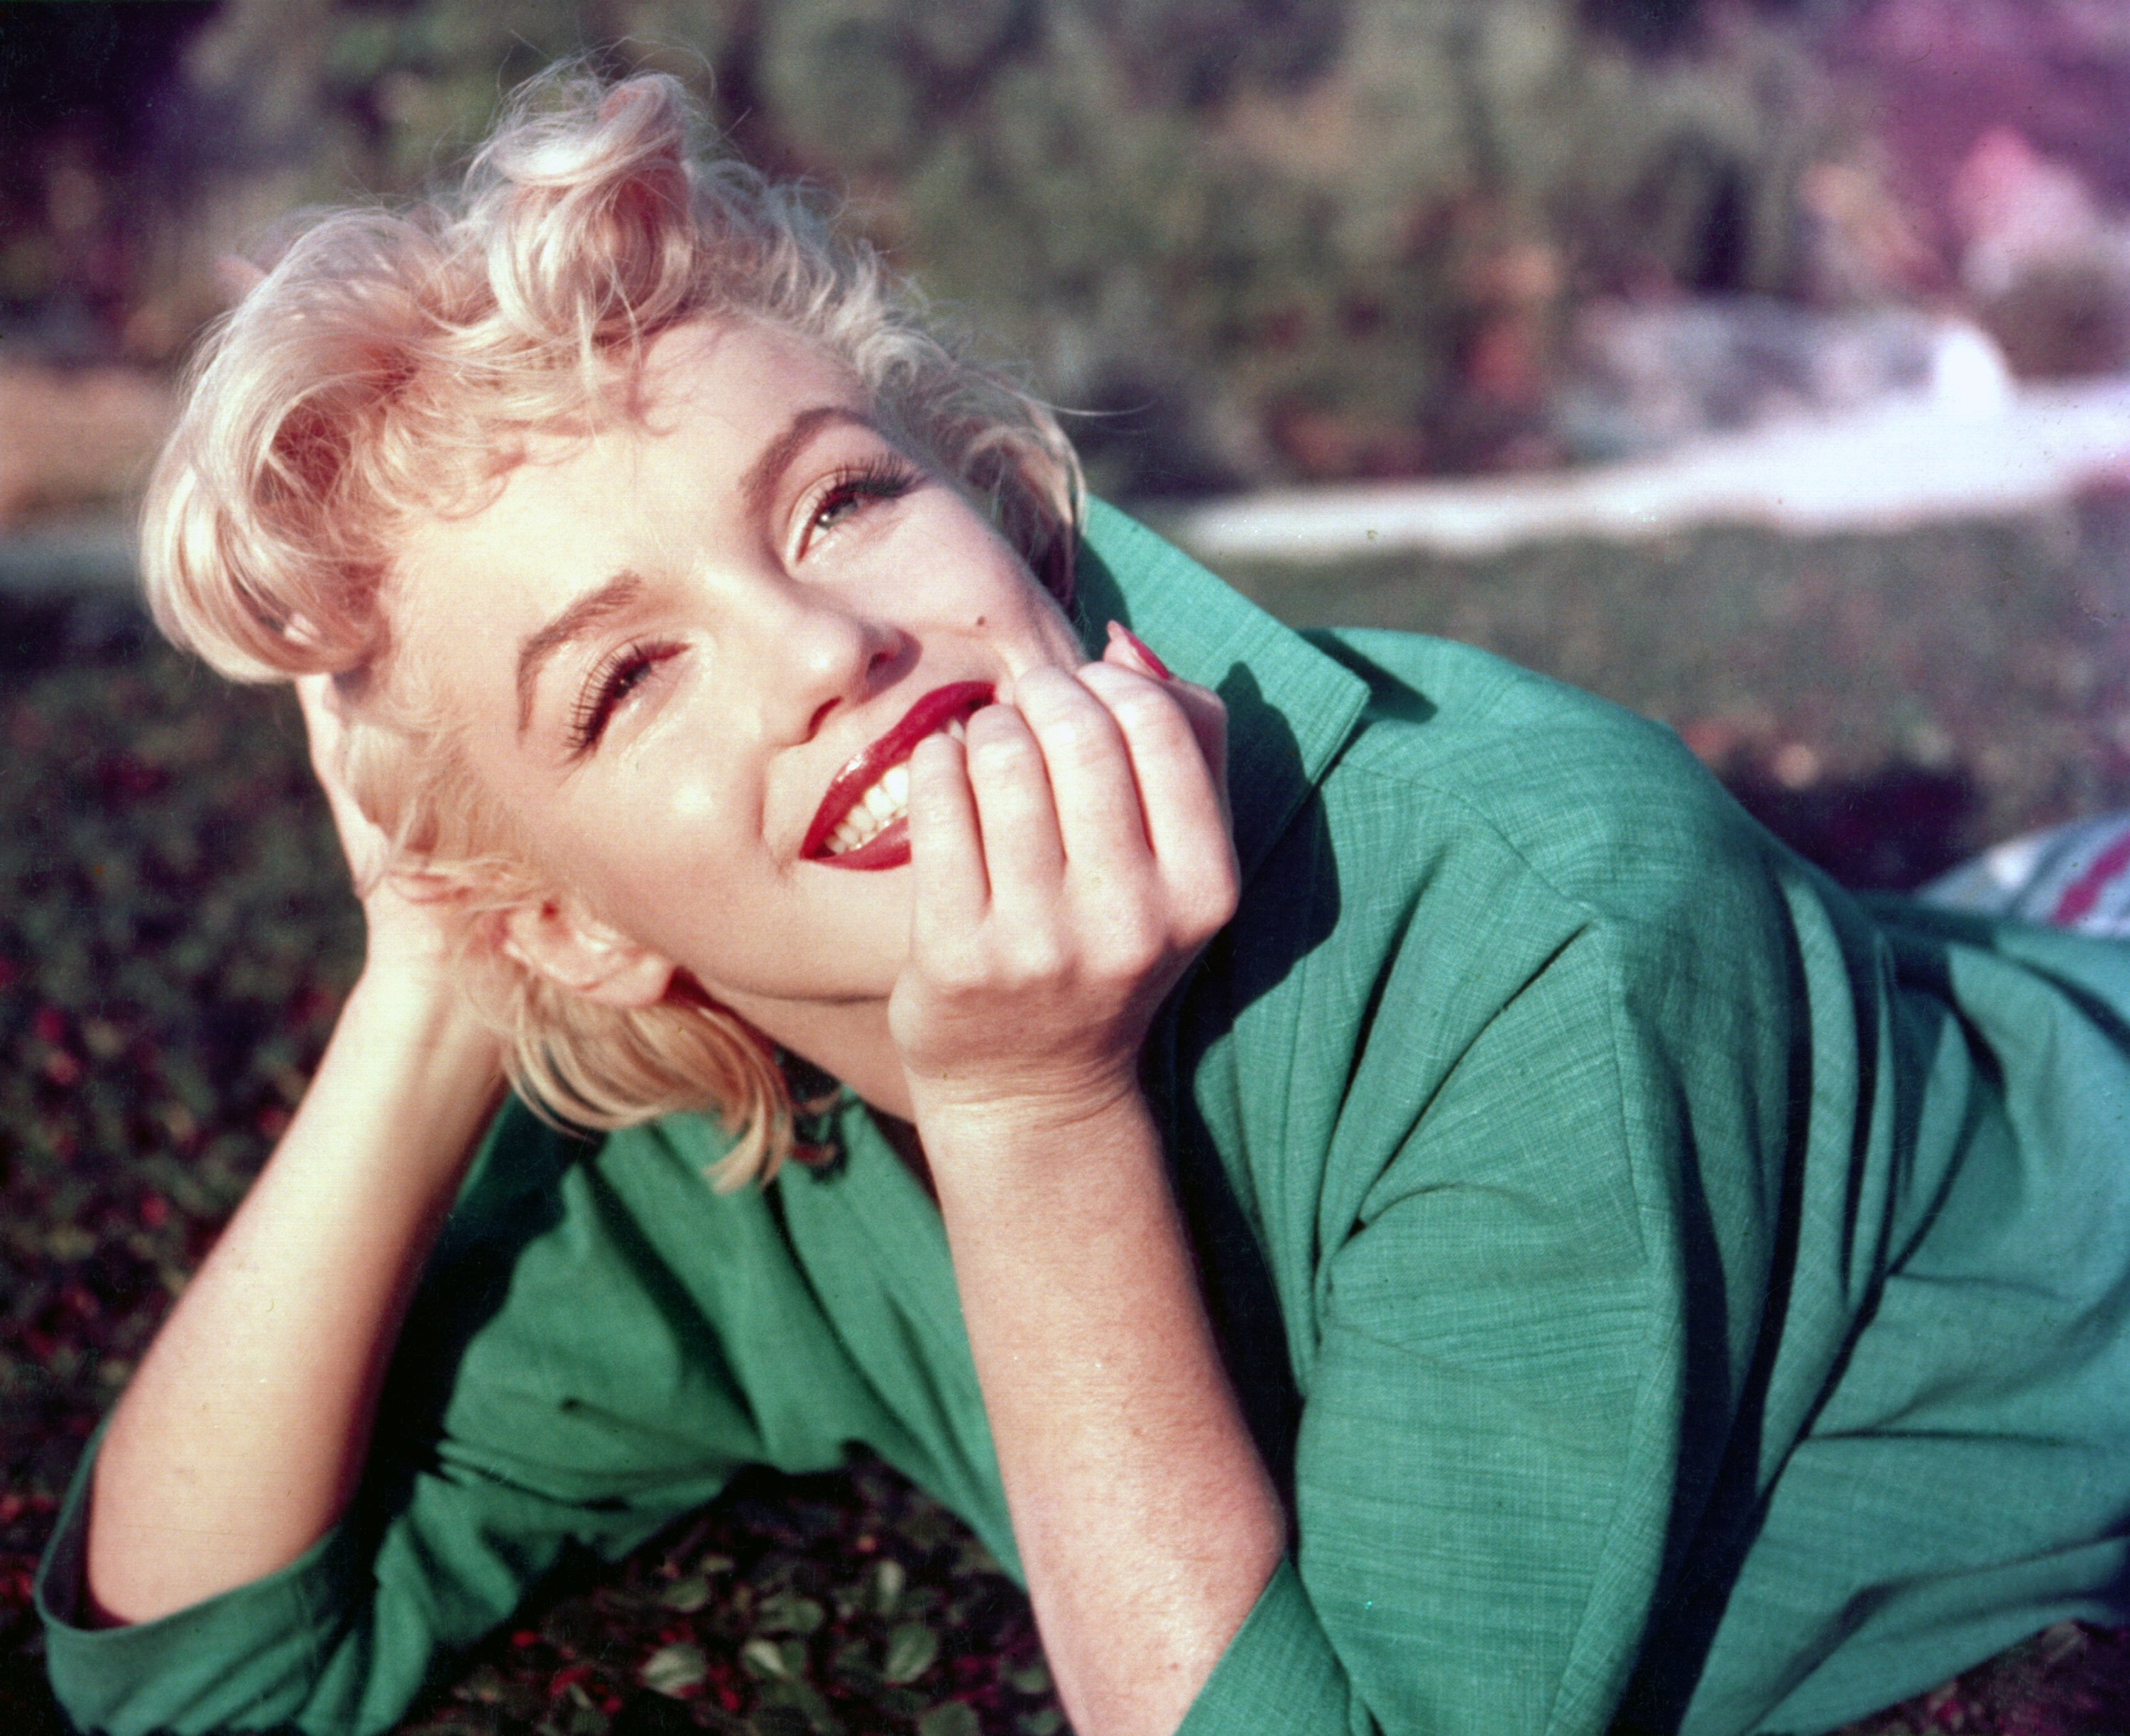 Actress Marilyn Monroe poses for a portrait laying on the grass in 1954 in Palm Springs, California.   Source: Getty Images